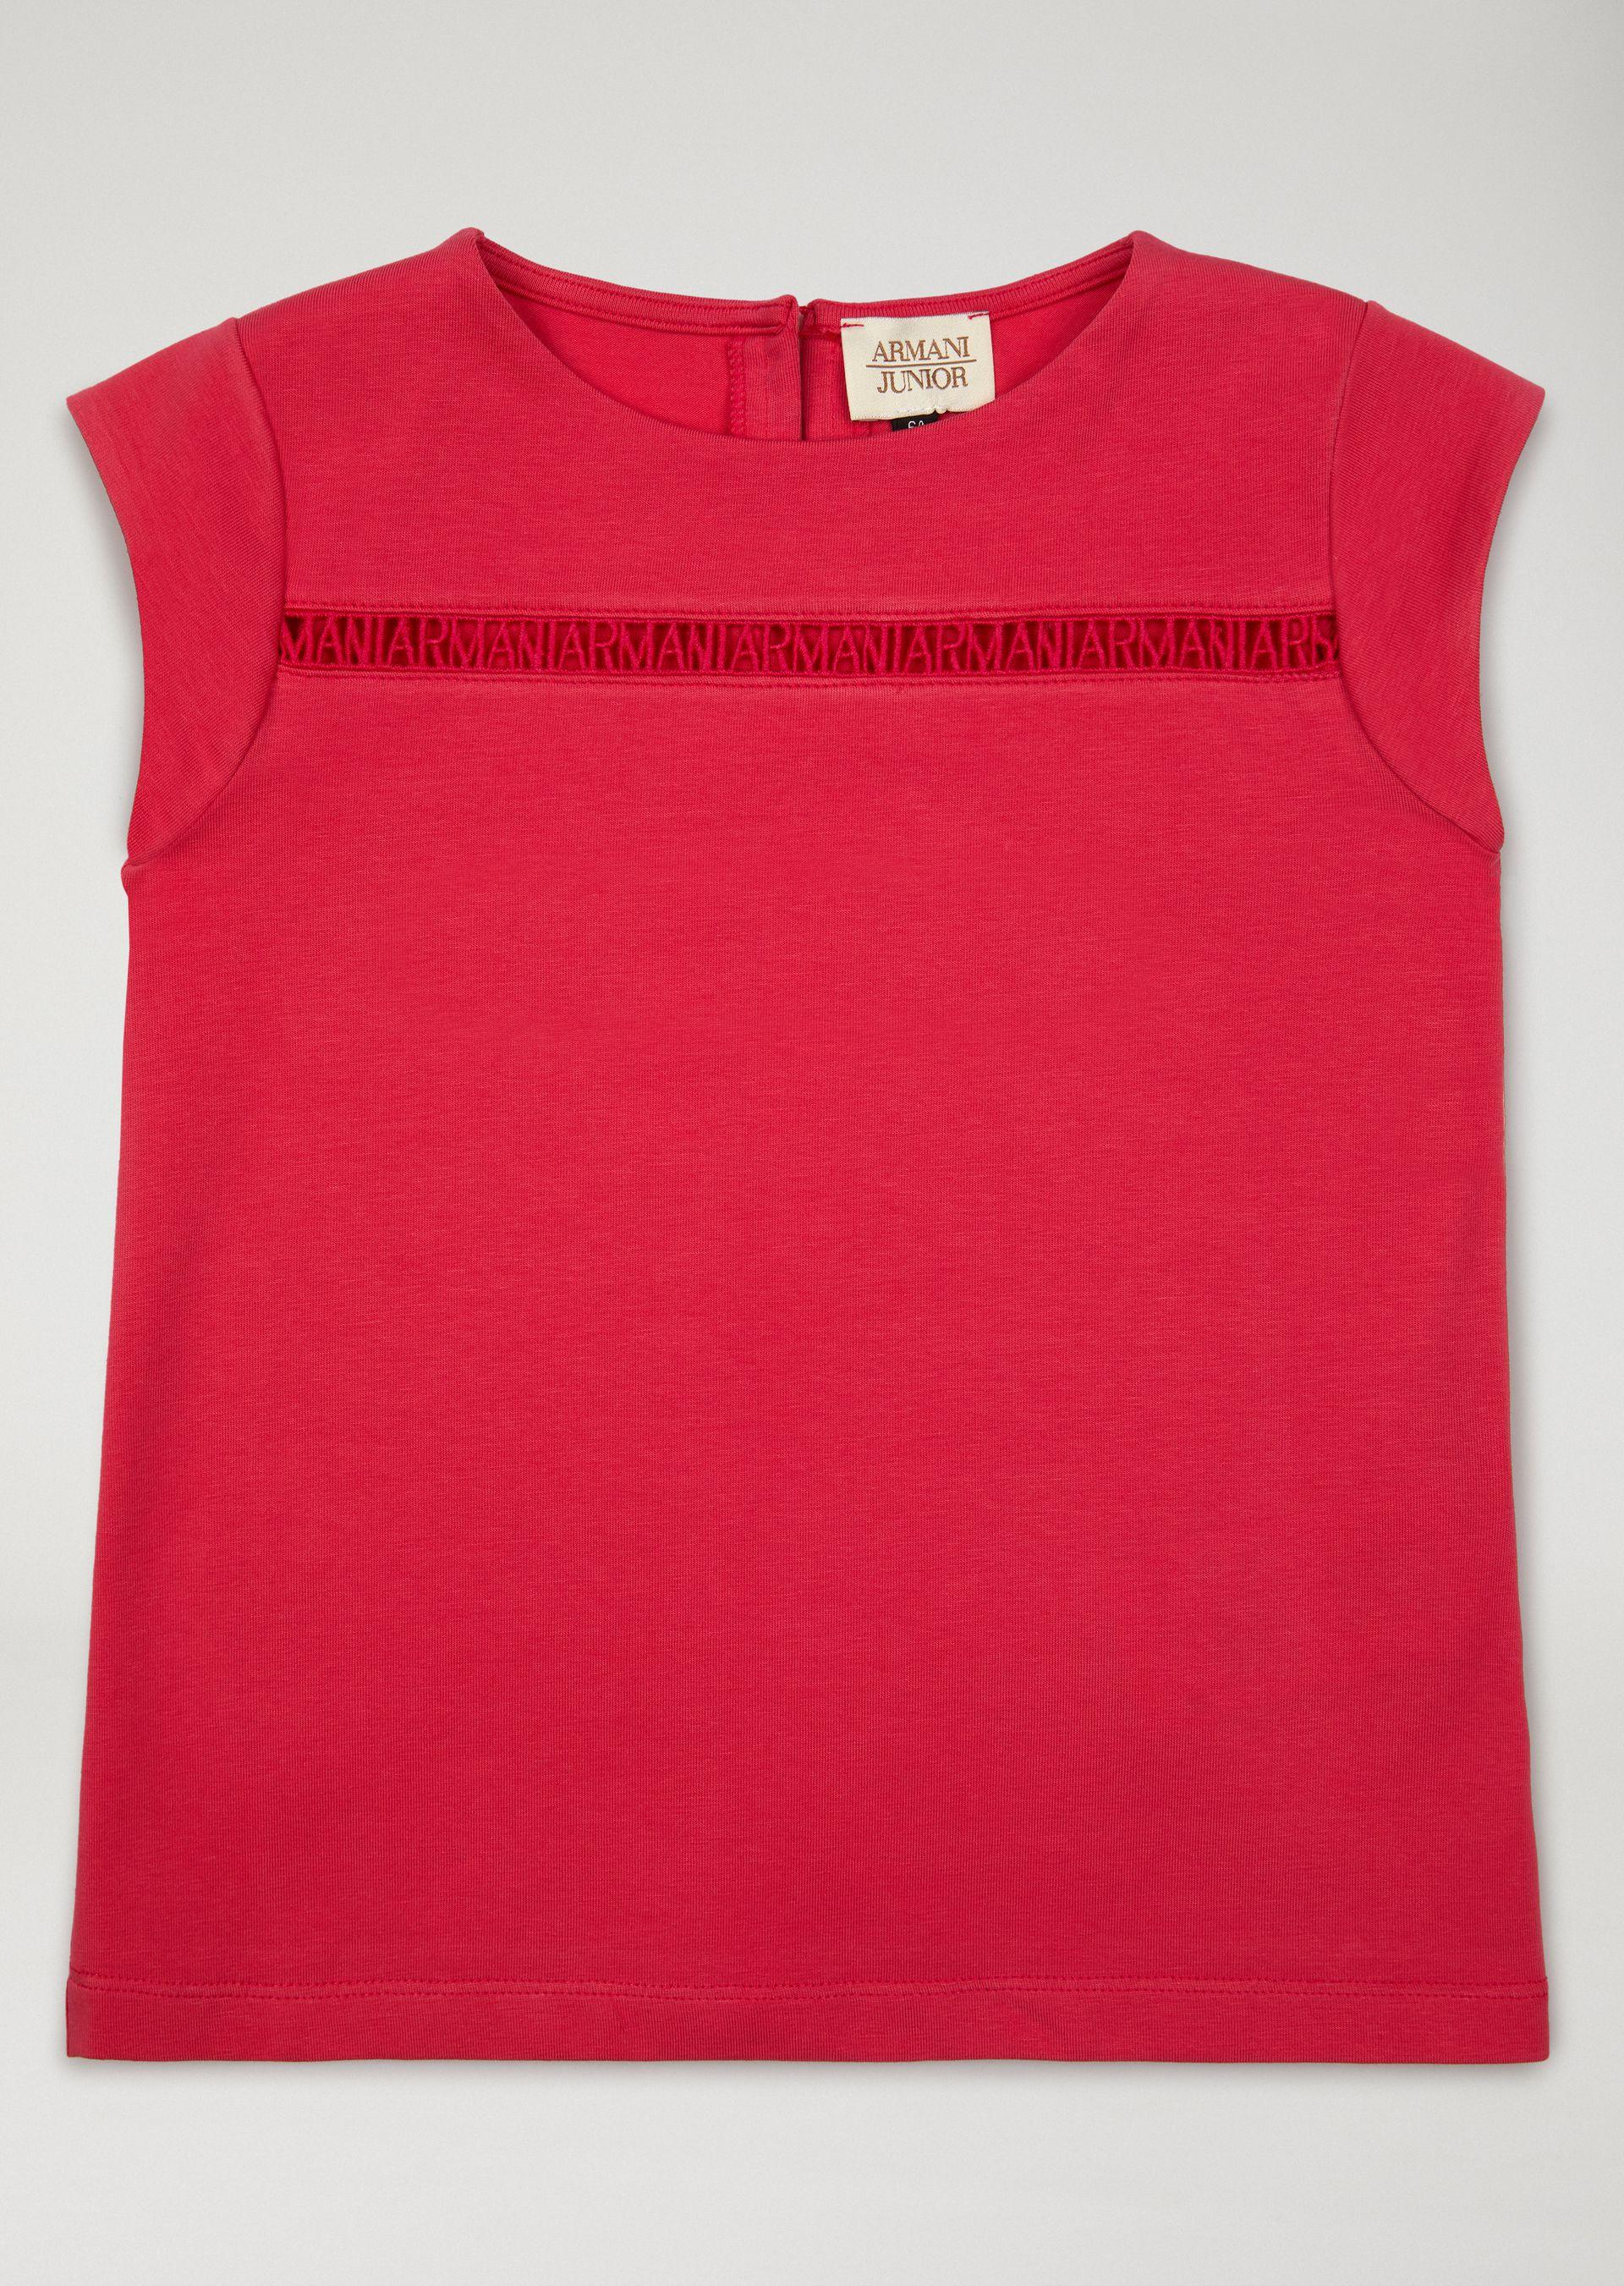 Emporio Armani Knitted Tops - Item 39844135 In Red